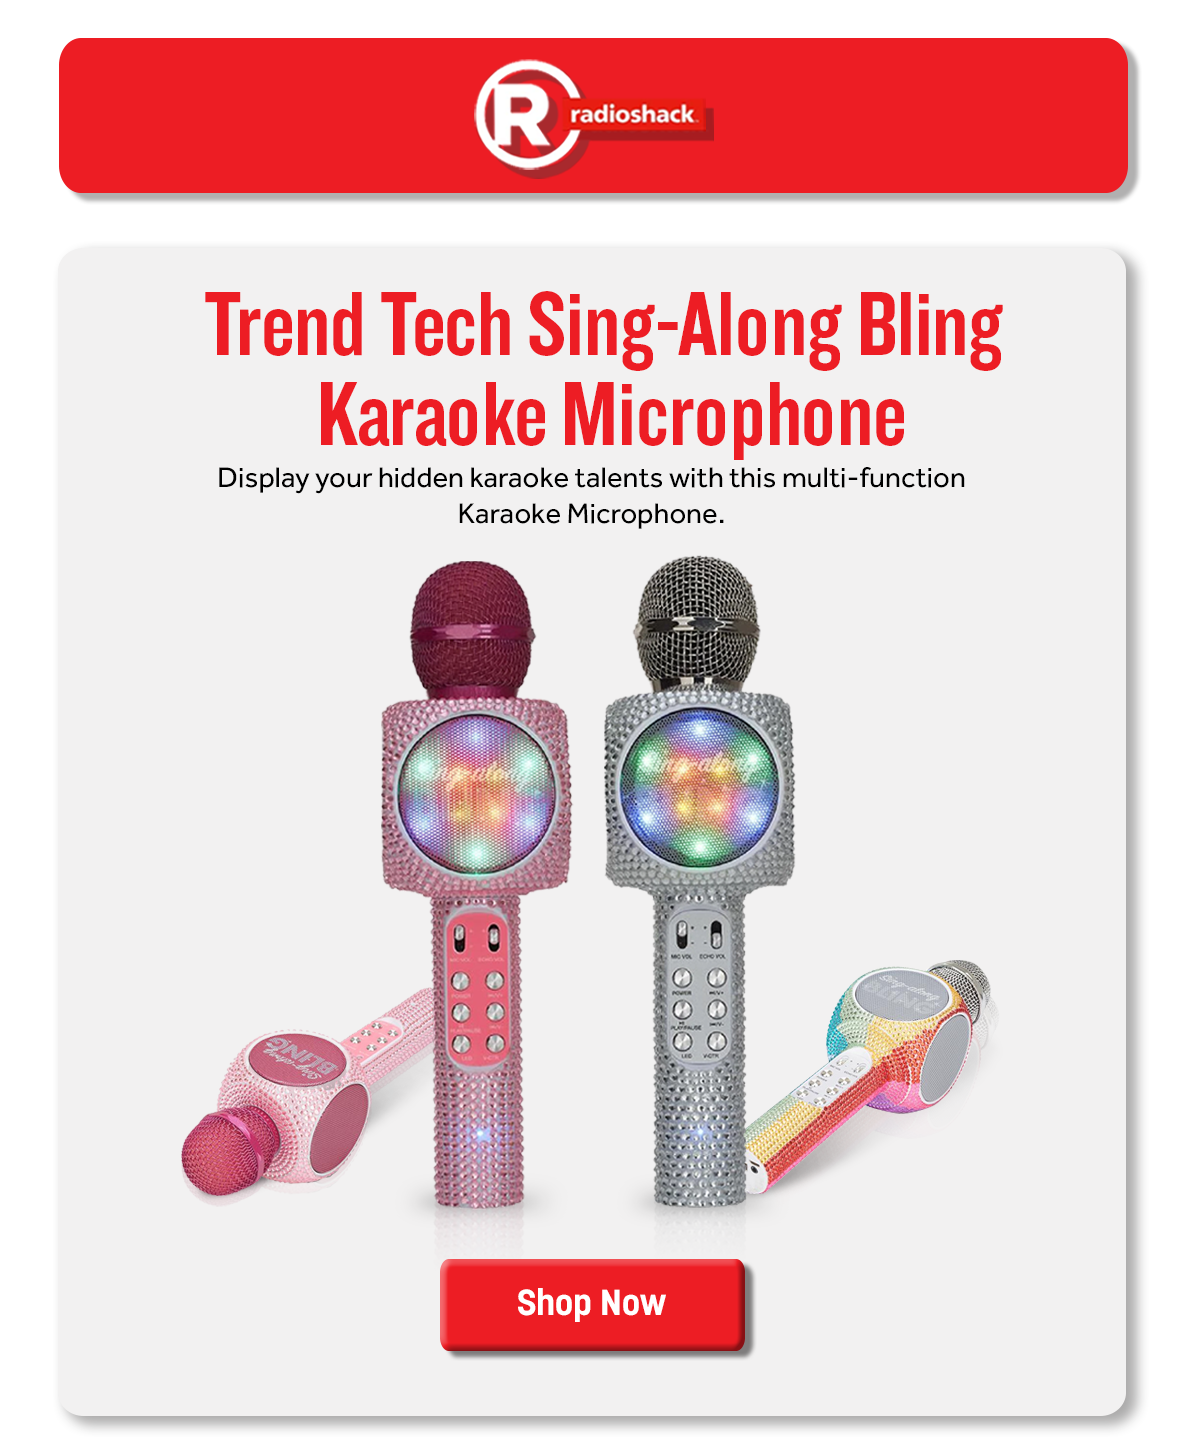 Trend Tech Sing-Along Bling Karaoke Microphone